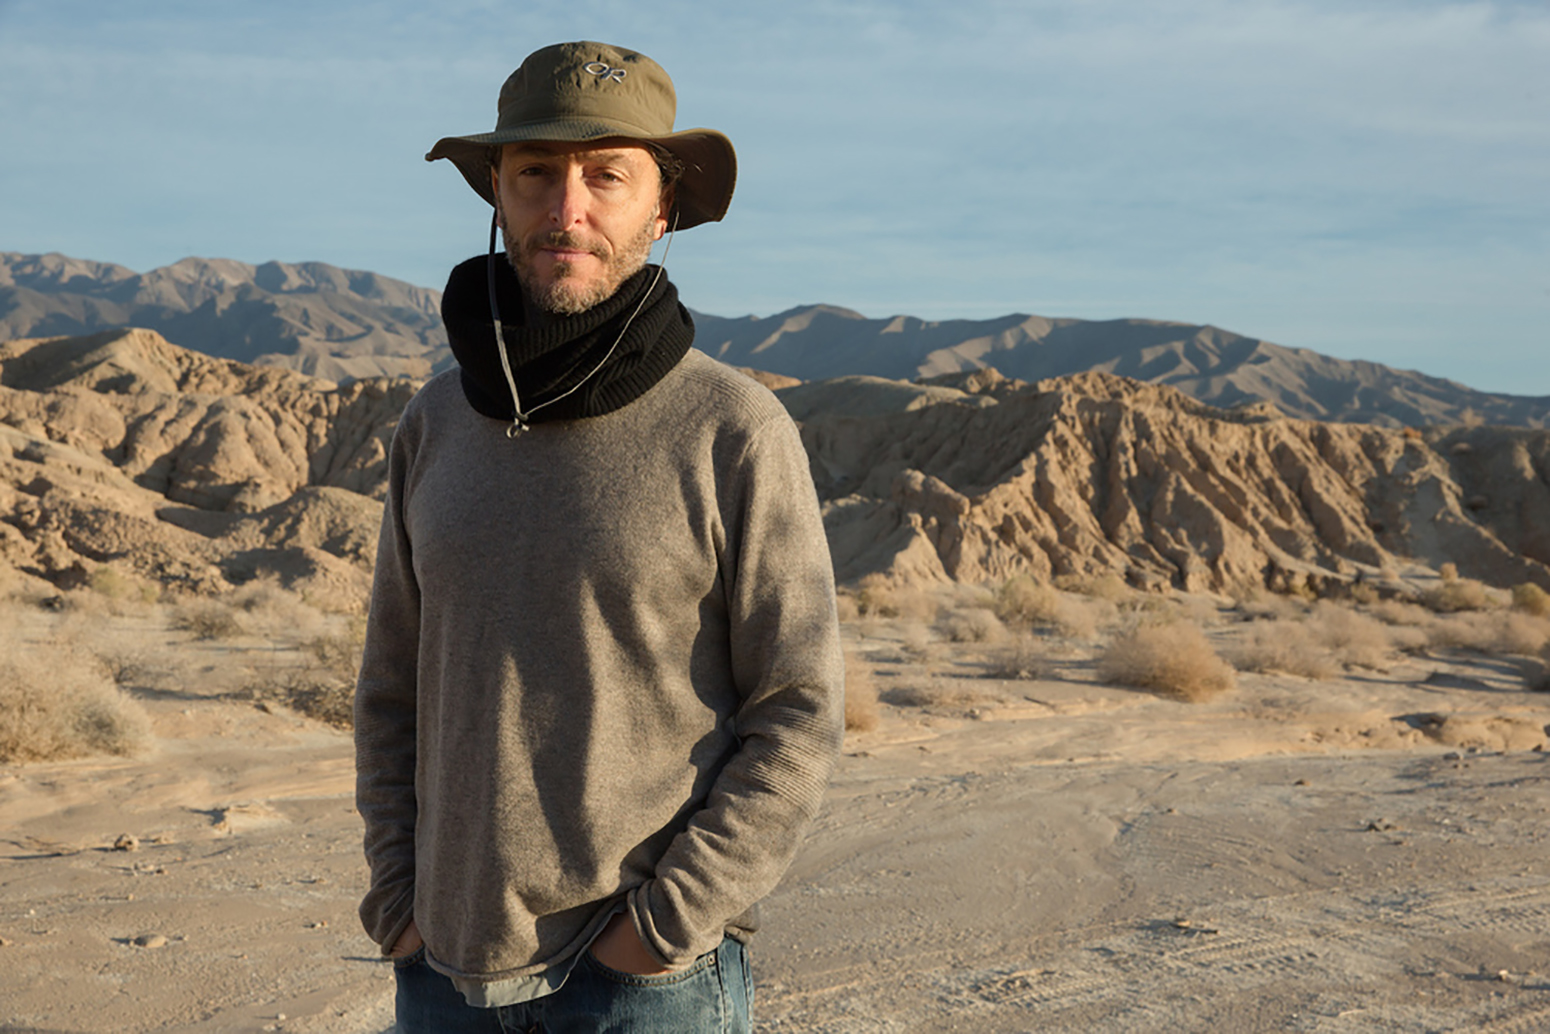 Lubezki on location. (François Duhamel/Broad Green Pictures)